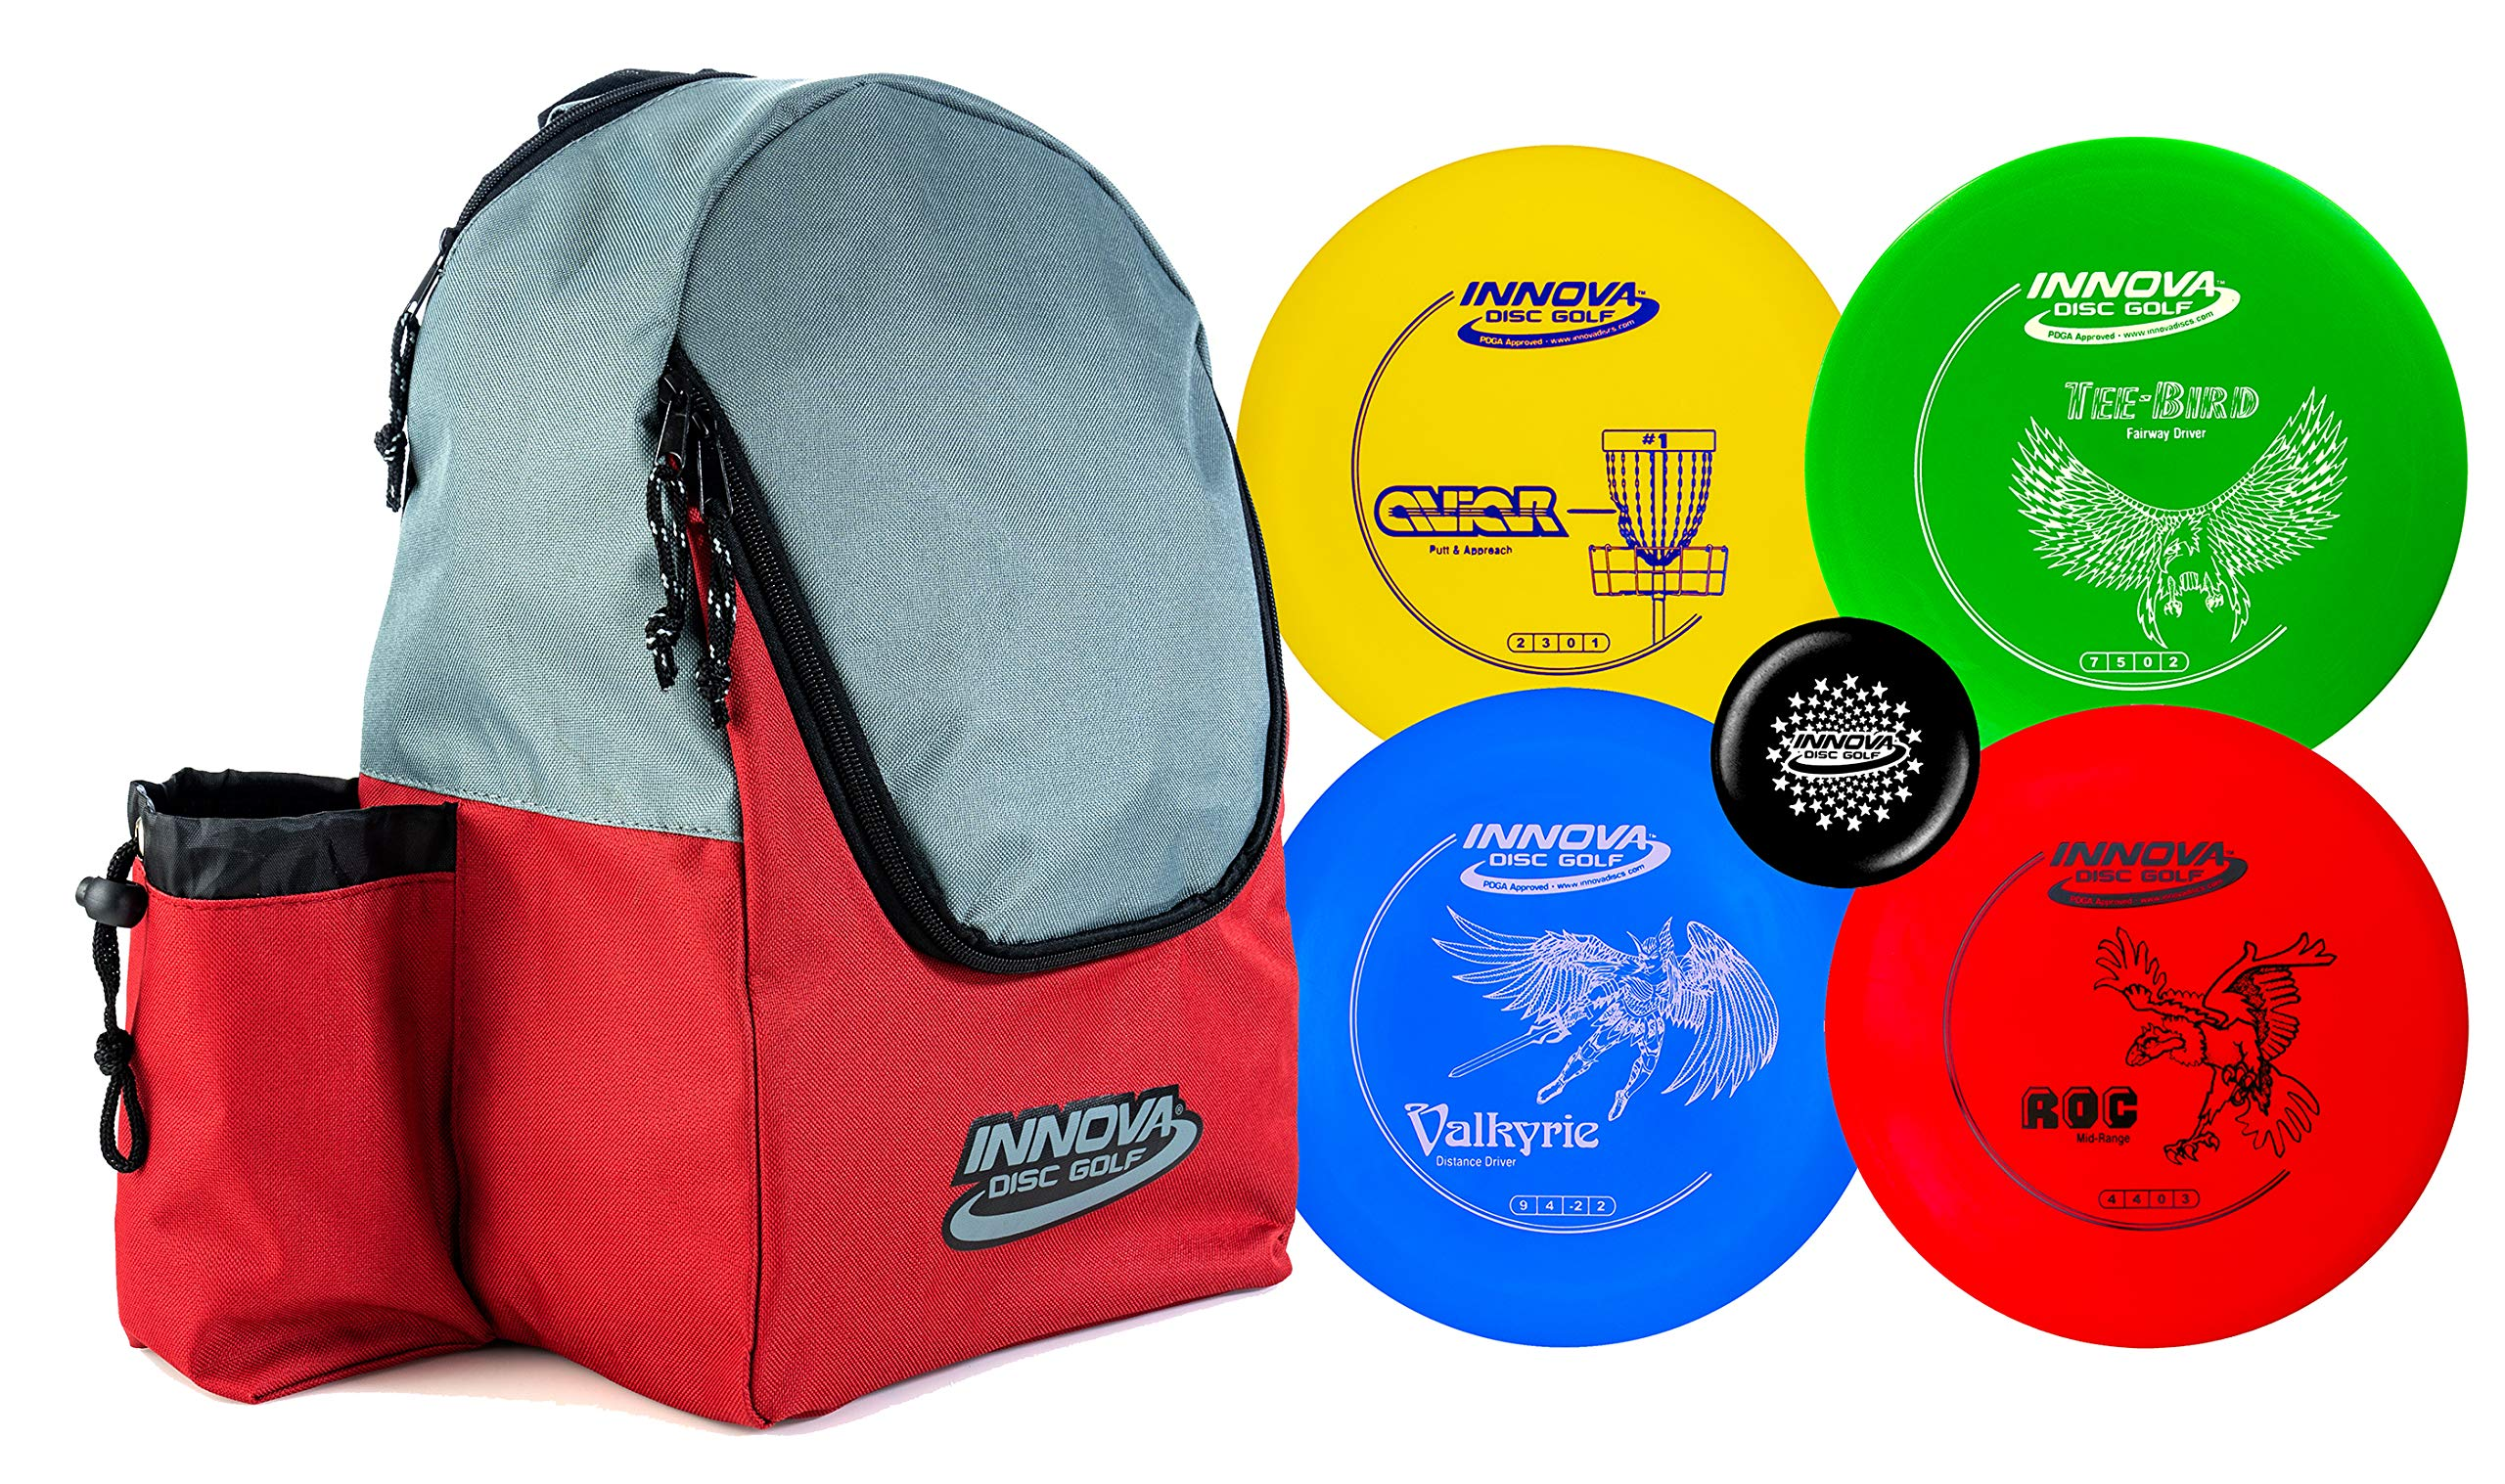 Innova Discs Golf Set with 4 Discs and Discover Disc Golf Backpack - DX Distance Driver, Fairway Driver, Mid-Range, Putter and Mini Marker Disc (Red/Gray) by Innova Discs